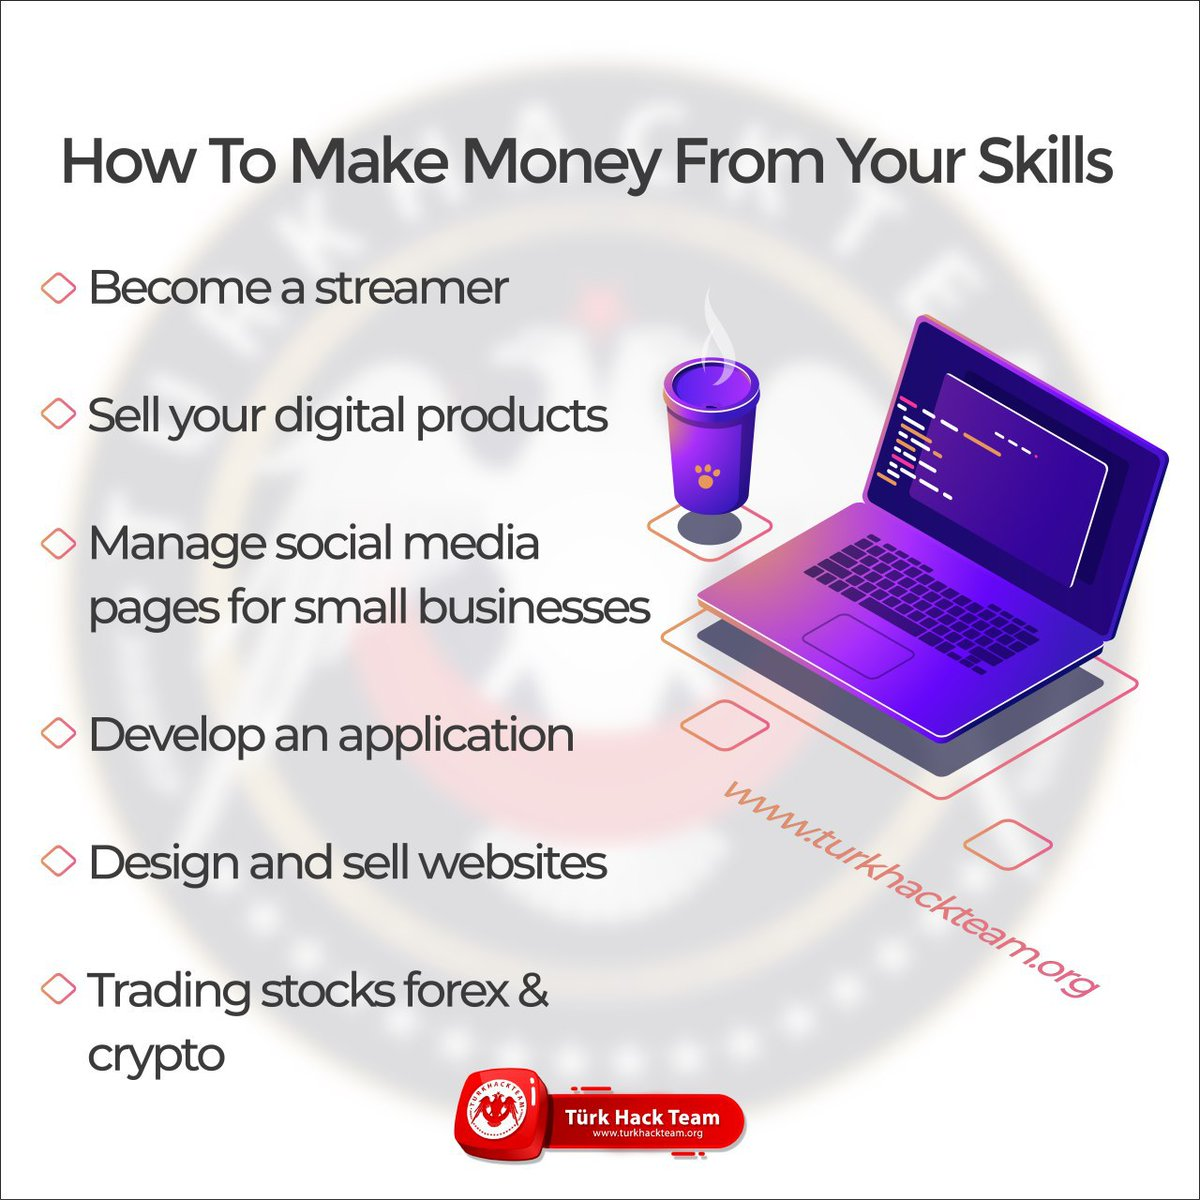 How to make money from your skills!  #cybersecurity #website #developer #design #skills #socialmedia #Cryptopic.twitter.com/Eq1yggfO7t